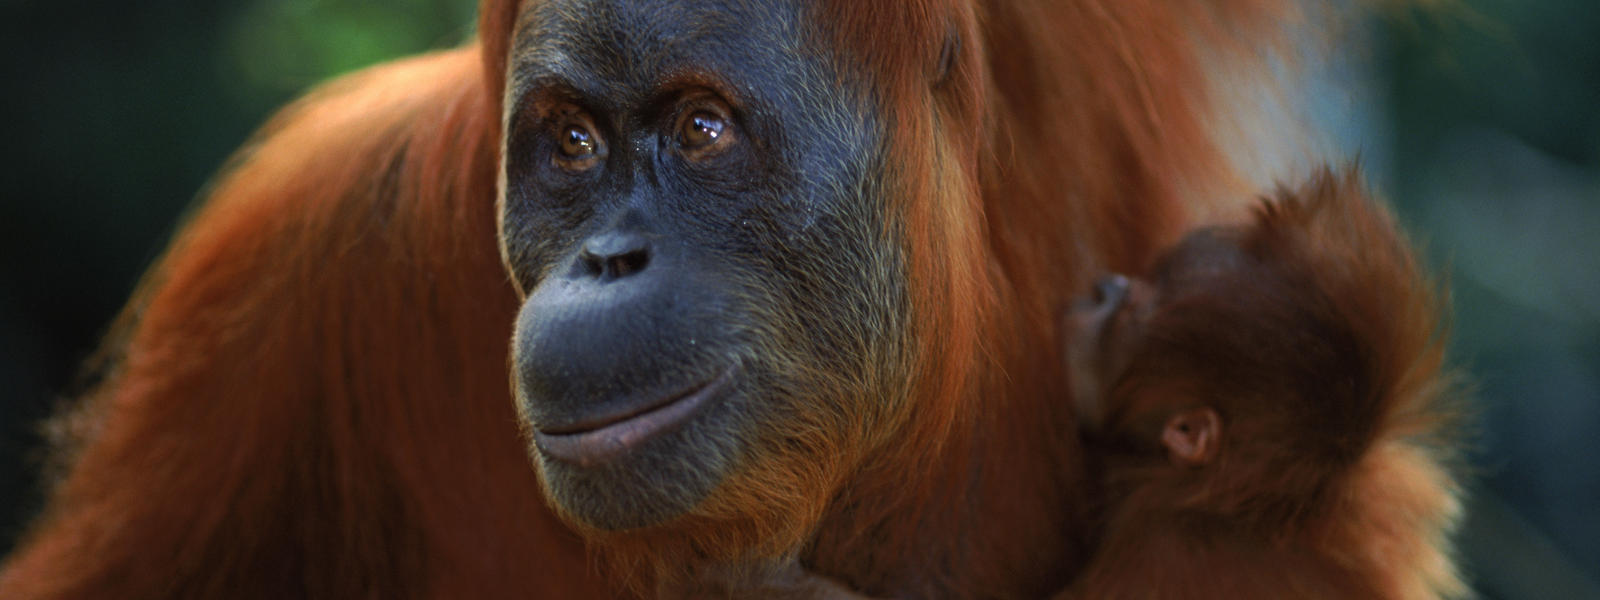 Sumatran Orangutans, their natural habitats are being destroyed by deforestation, often for palm oil production